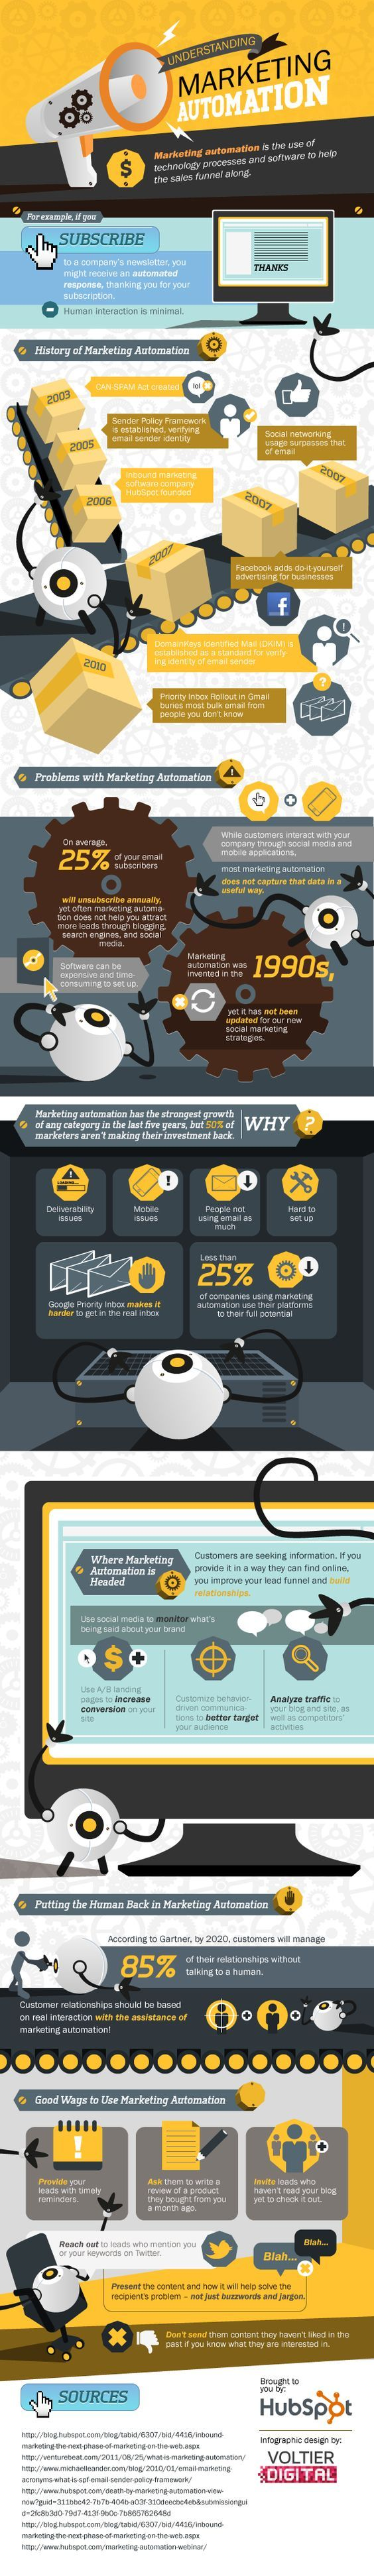 Discover How Marketing Automation & Sales Funnels Drive Business Growth | Digital Marketing infographic